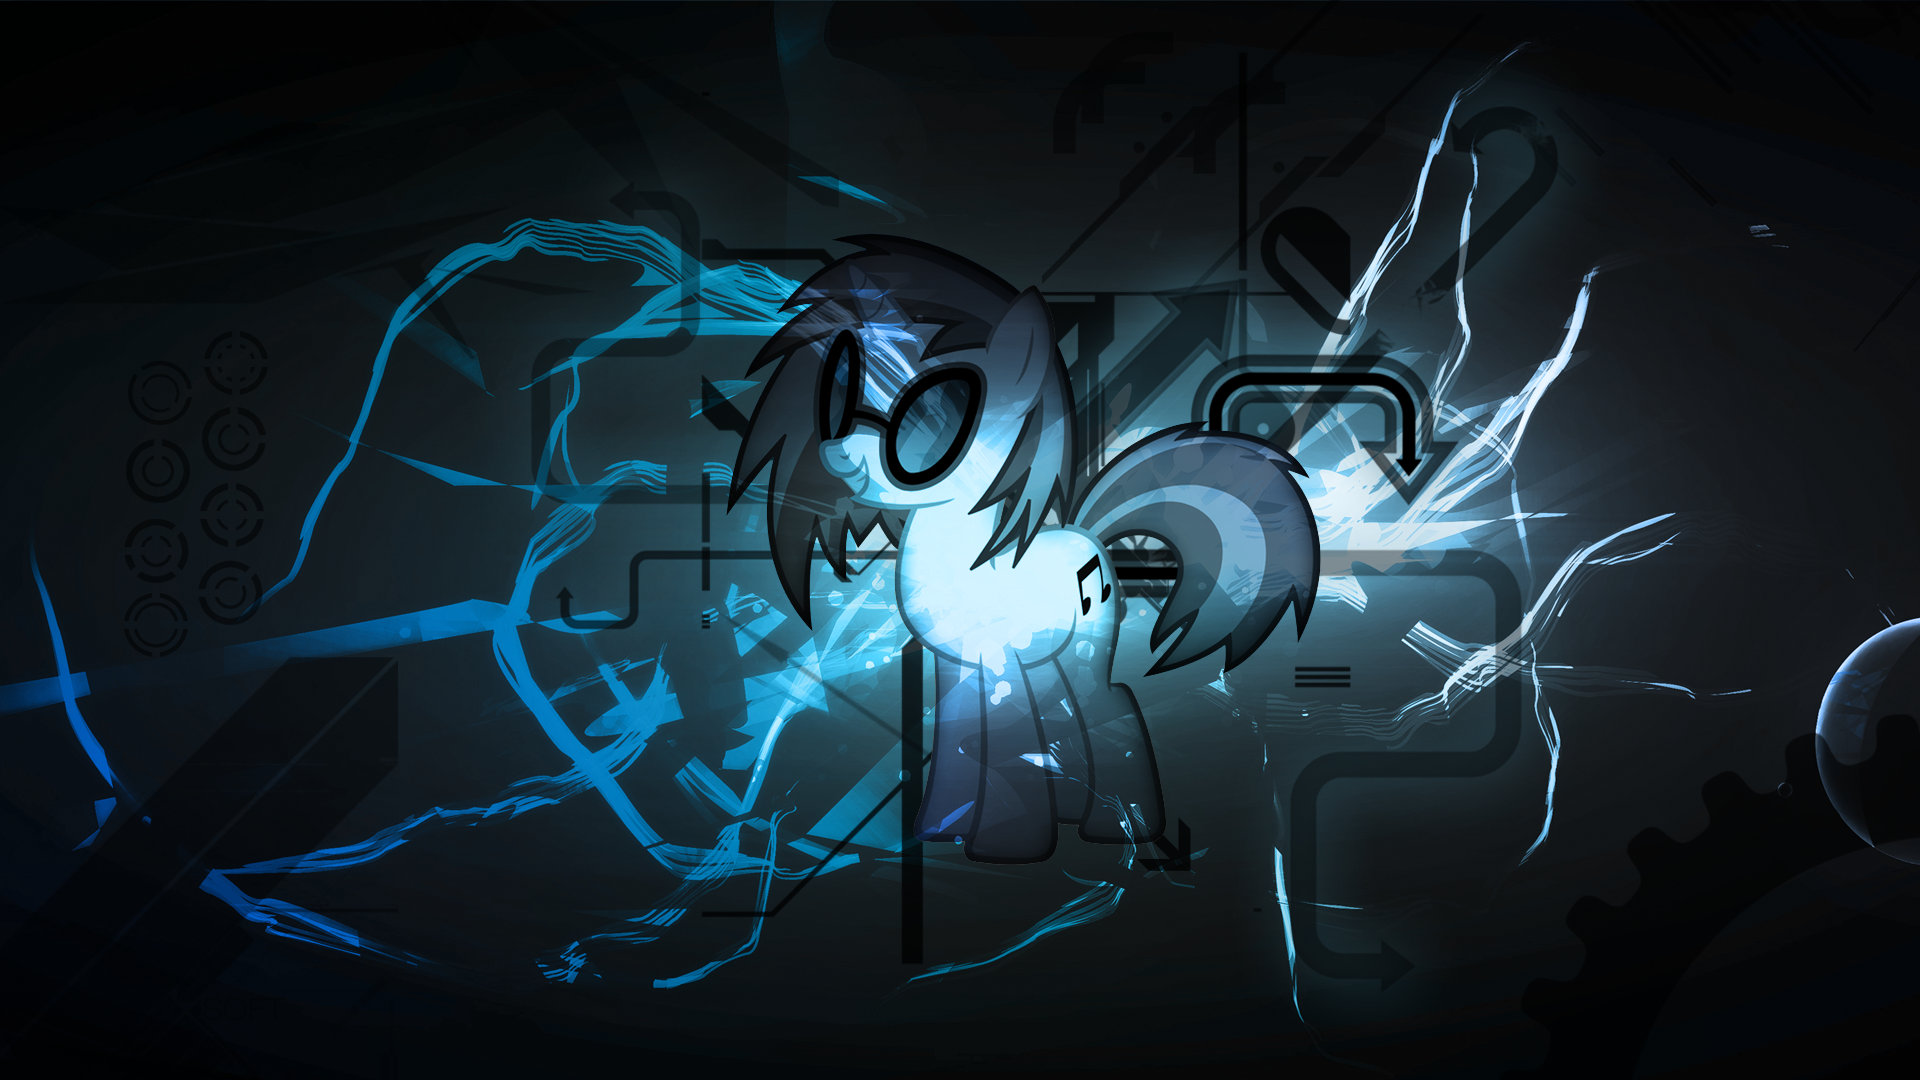 Vinyl Scratch DJ-P0N3 Super Style Wallpaper by BlueDragonHans